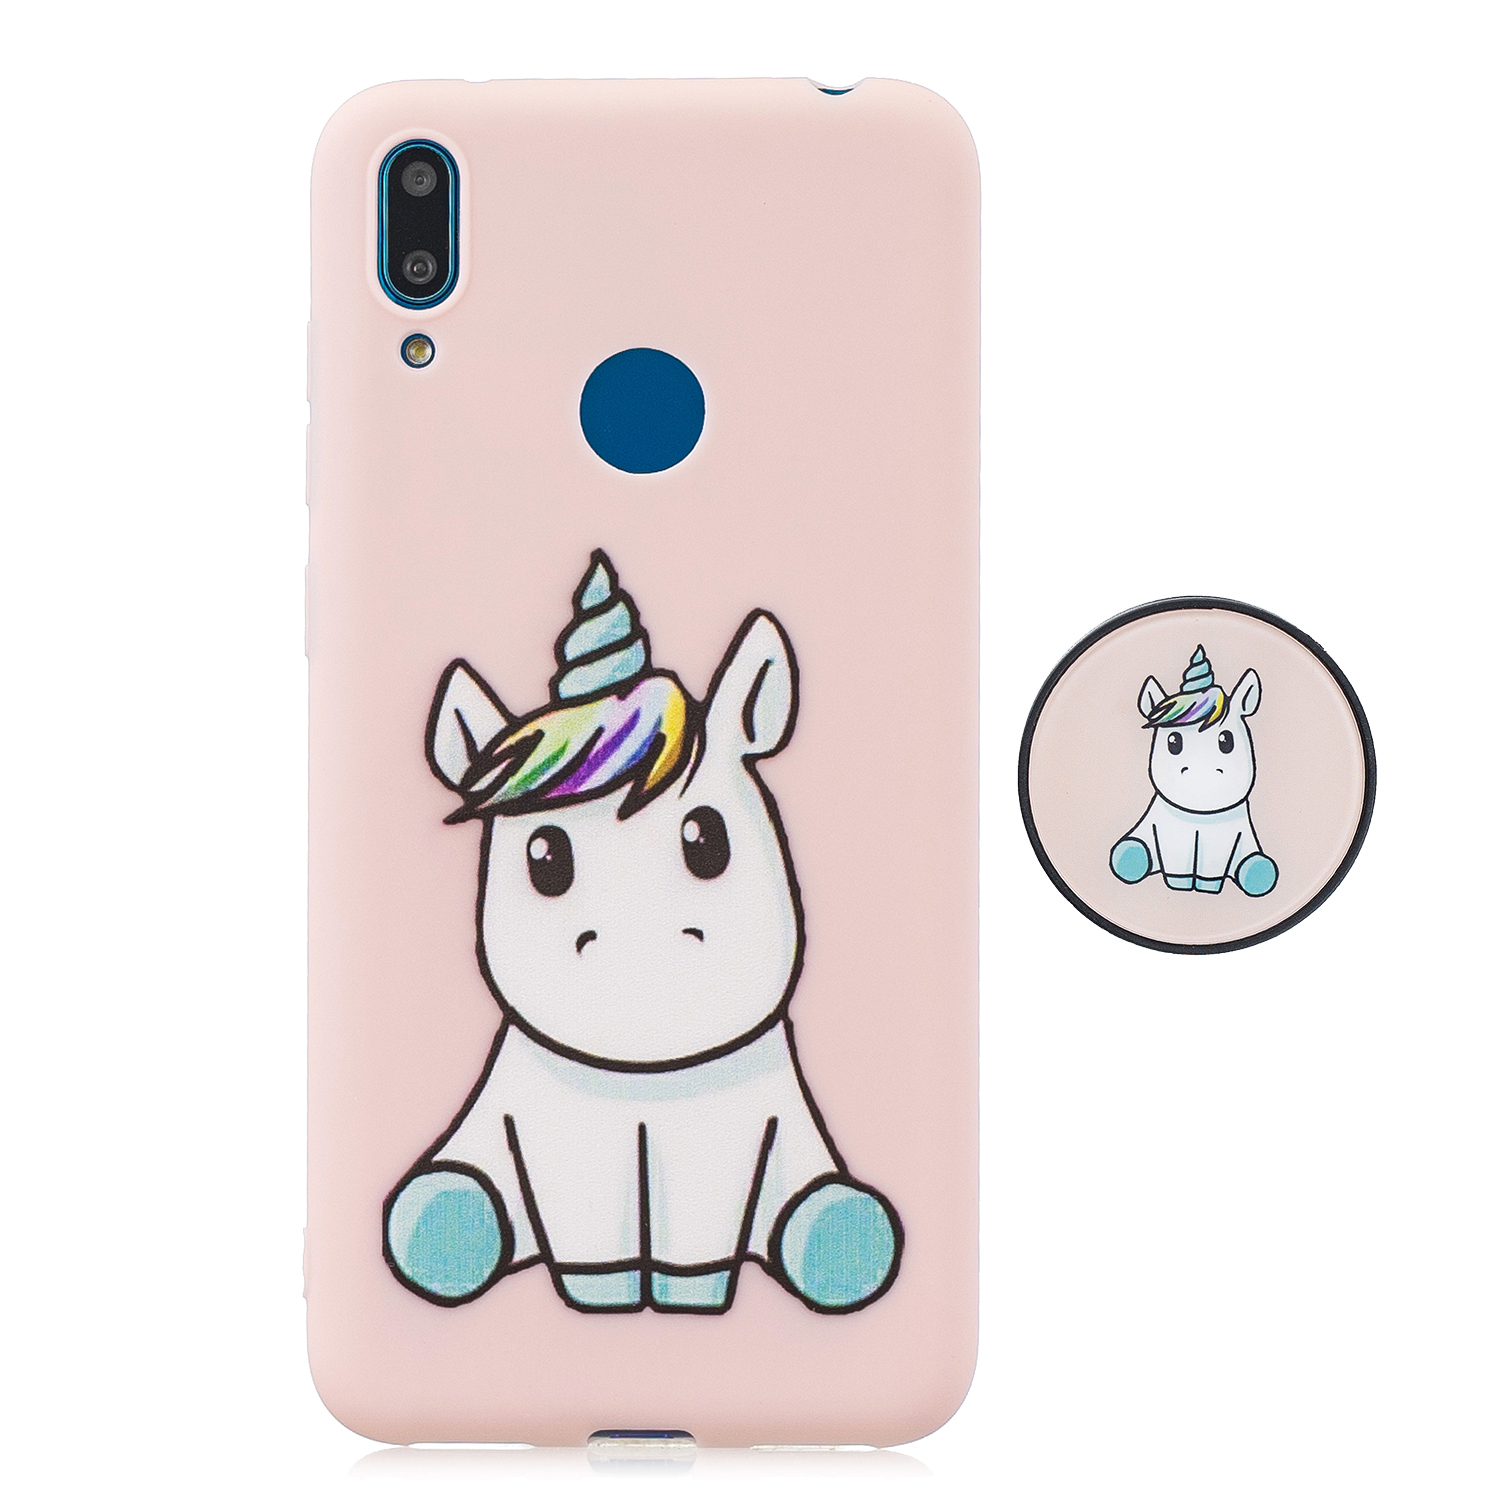 For HUAWEI Y7 2019 Flexible Stand Holder Case Soft TPU Full Cover Case Phone Cover Cute Phone Case 6